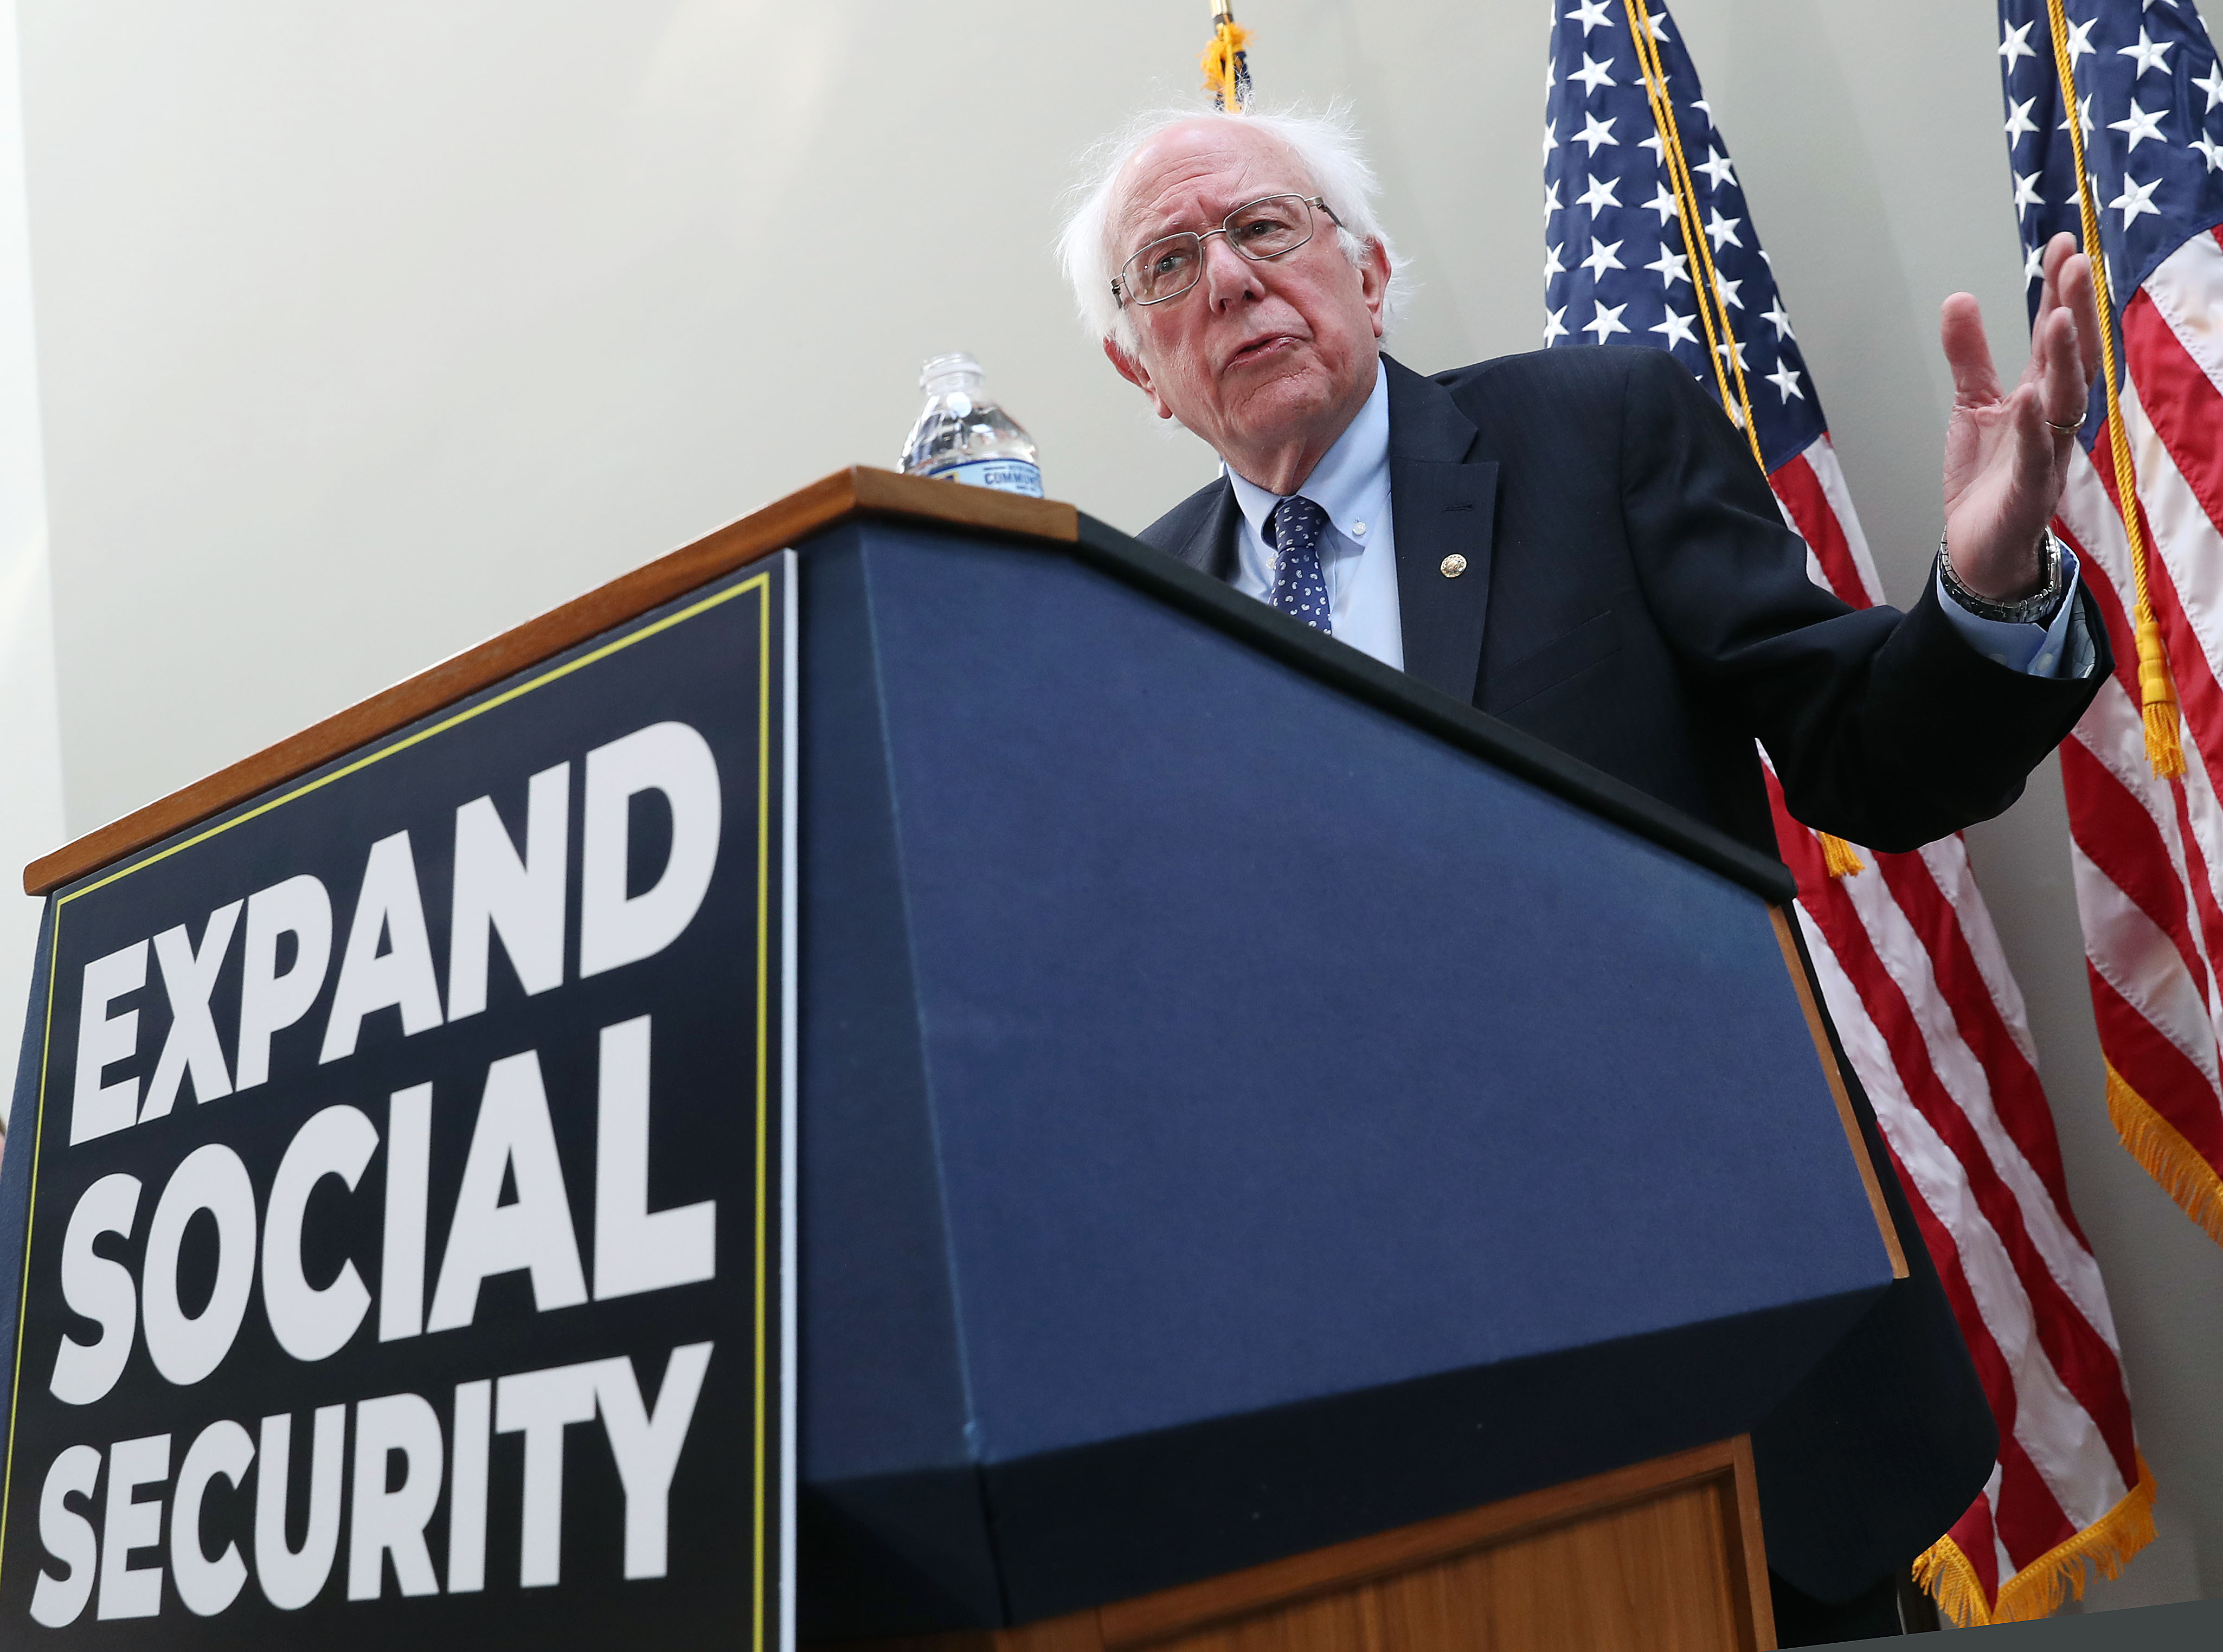 Sen. Sanders (I-VT) And Rep. Peter DeFazio (D-OR) Announce Legislation To Expand Social Security